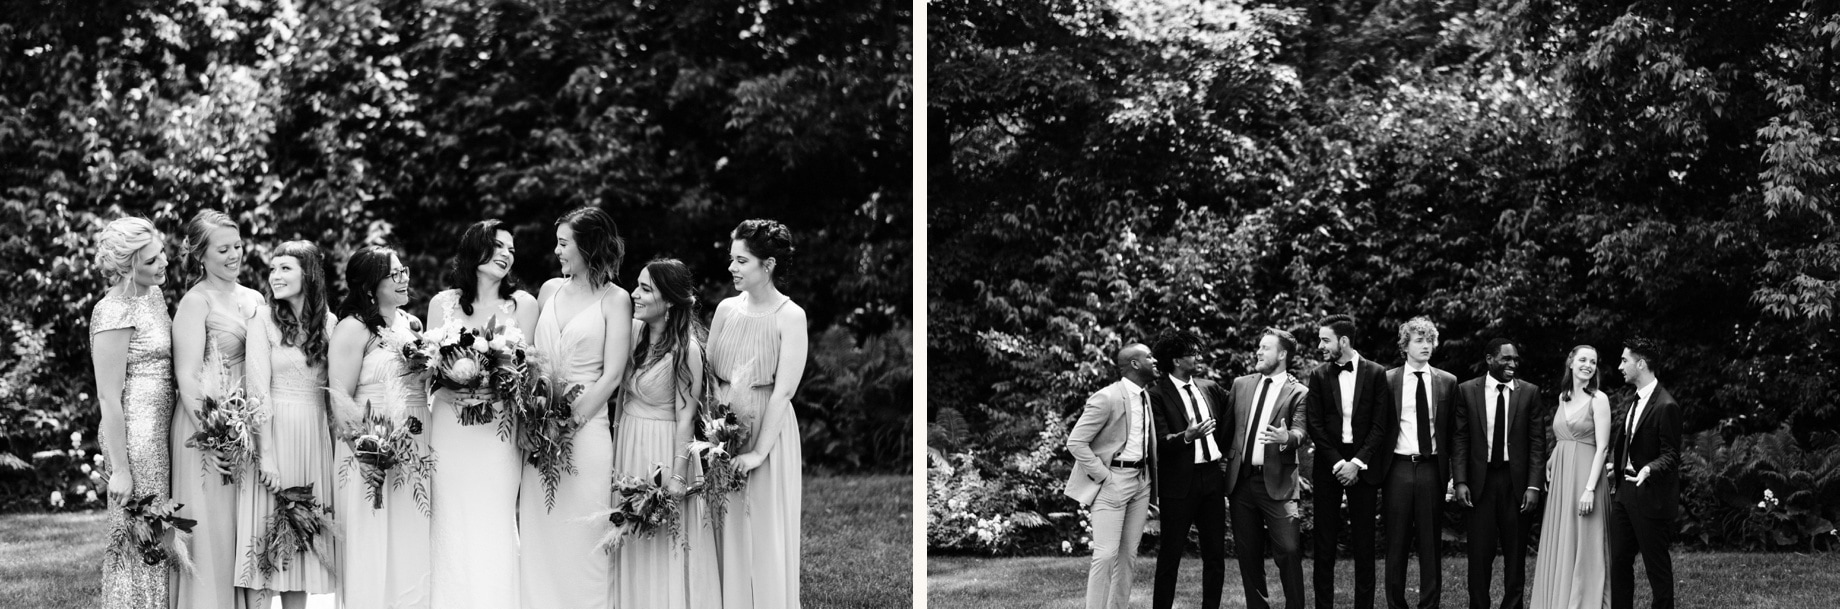 black and white photos of wedding party